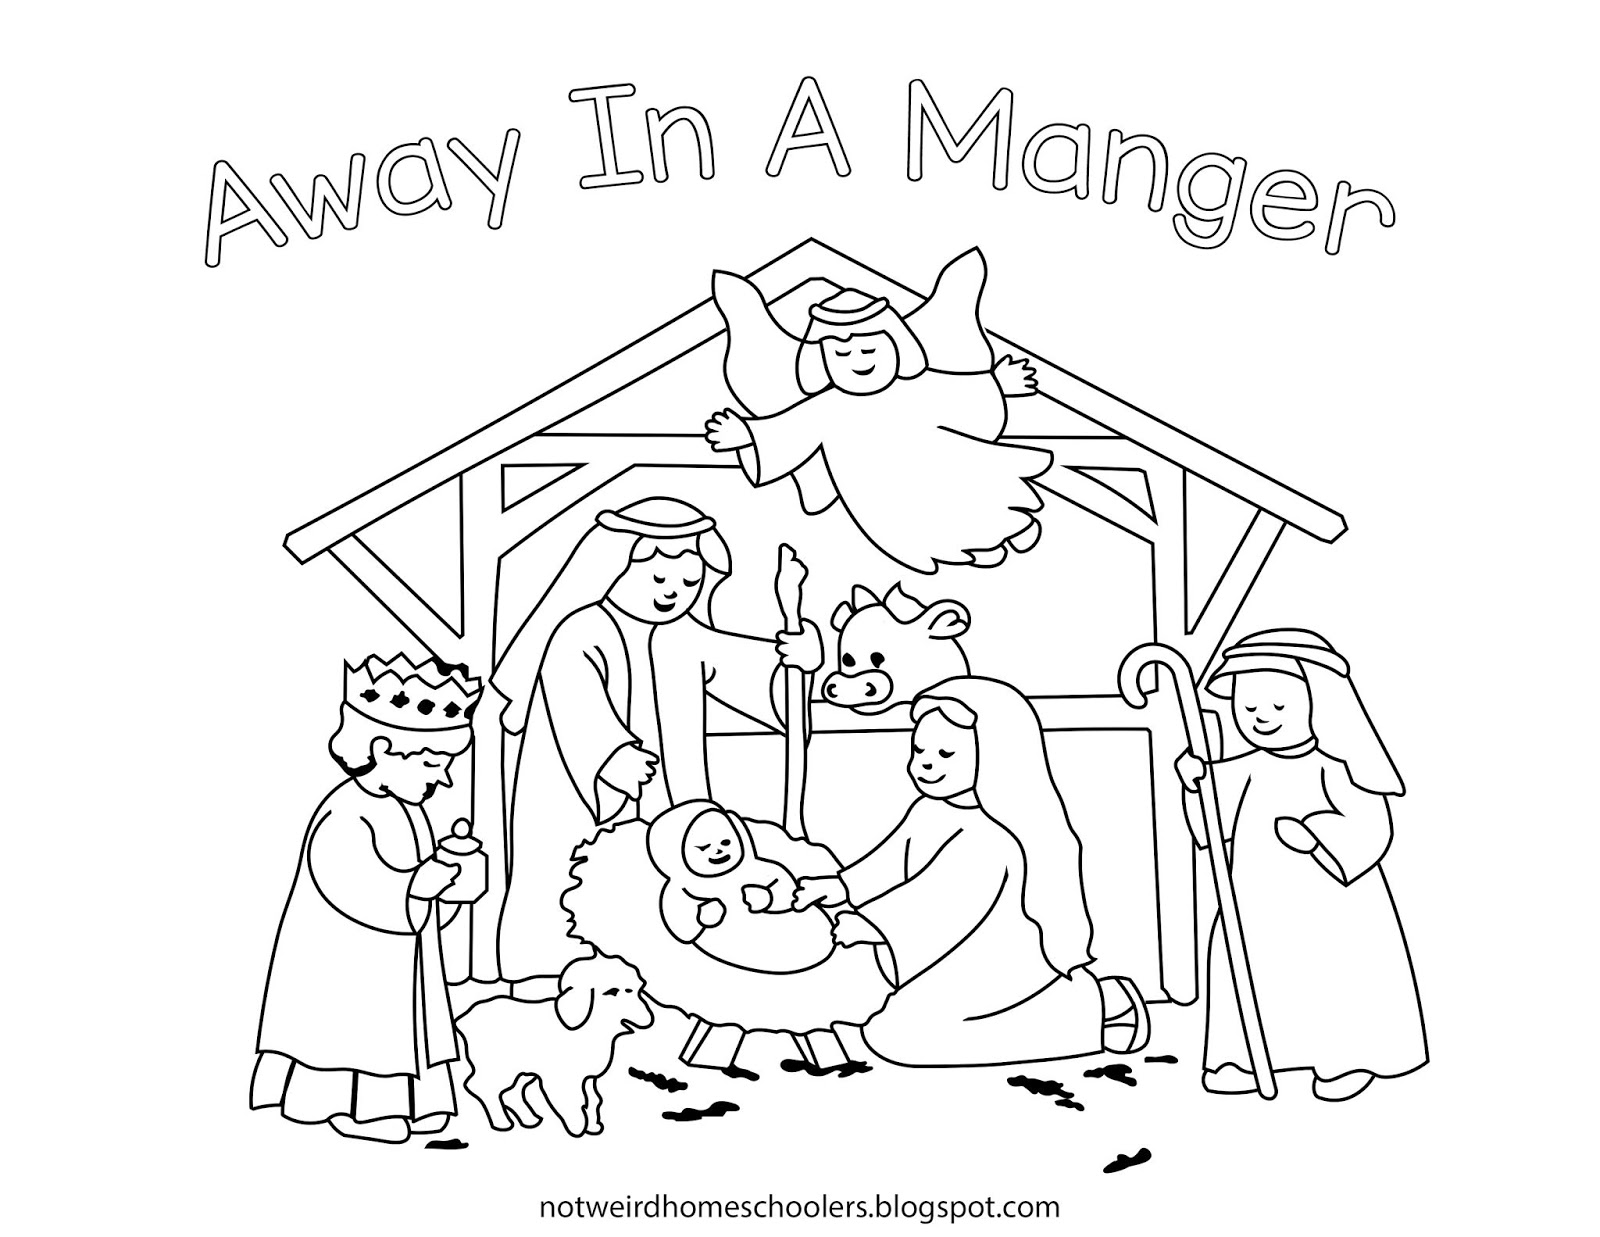 FREE HOMESCHOOLING RESOURCE!!! Nativity Scene Coloring Page